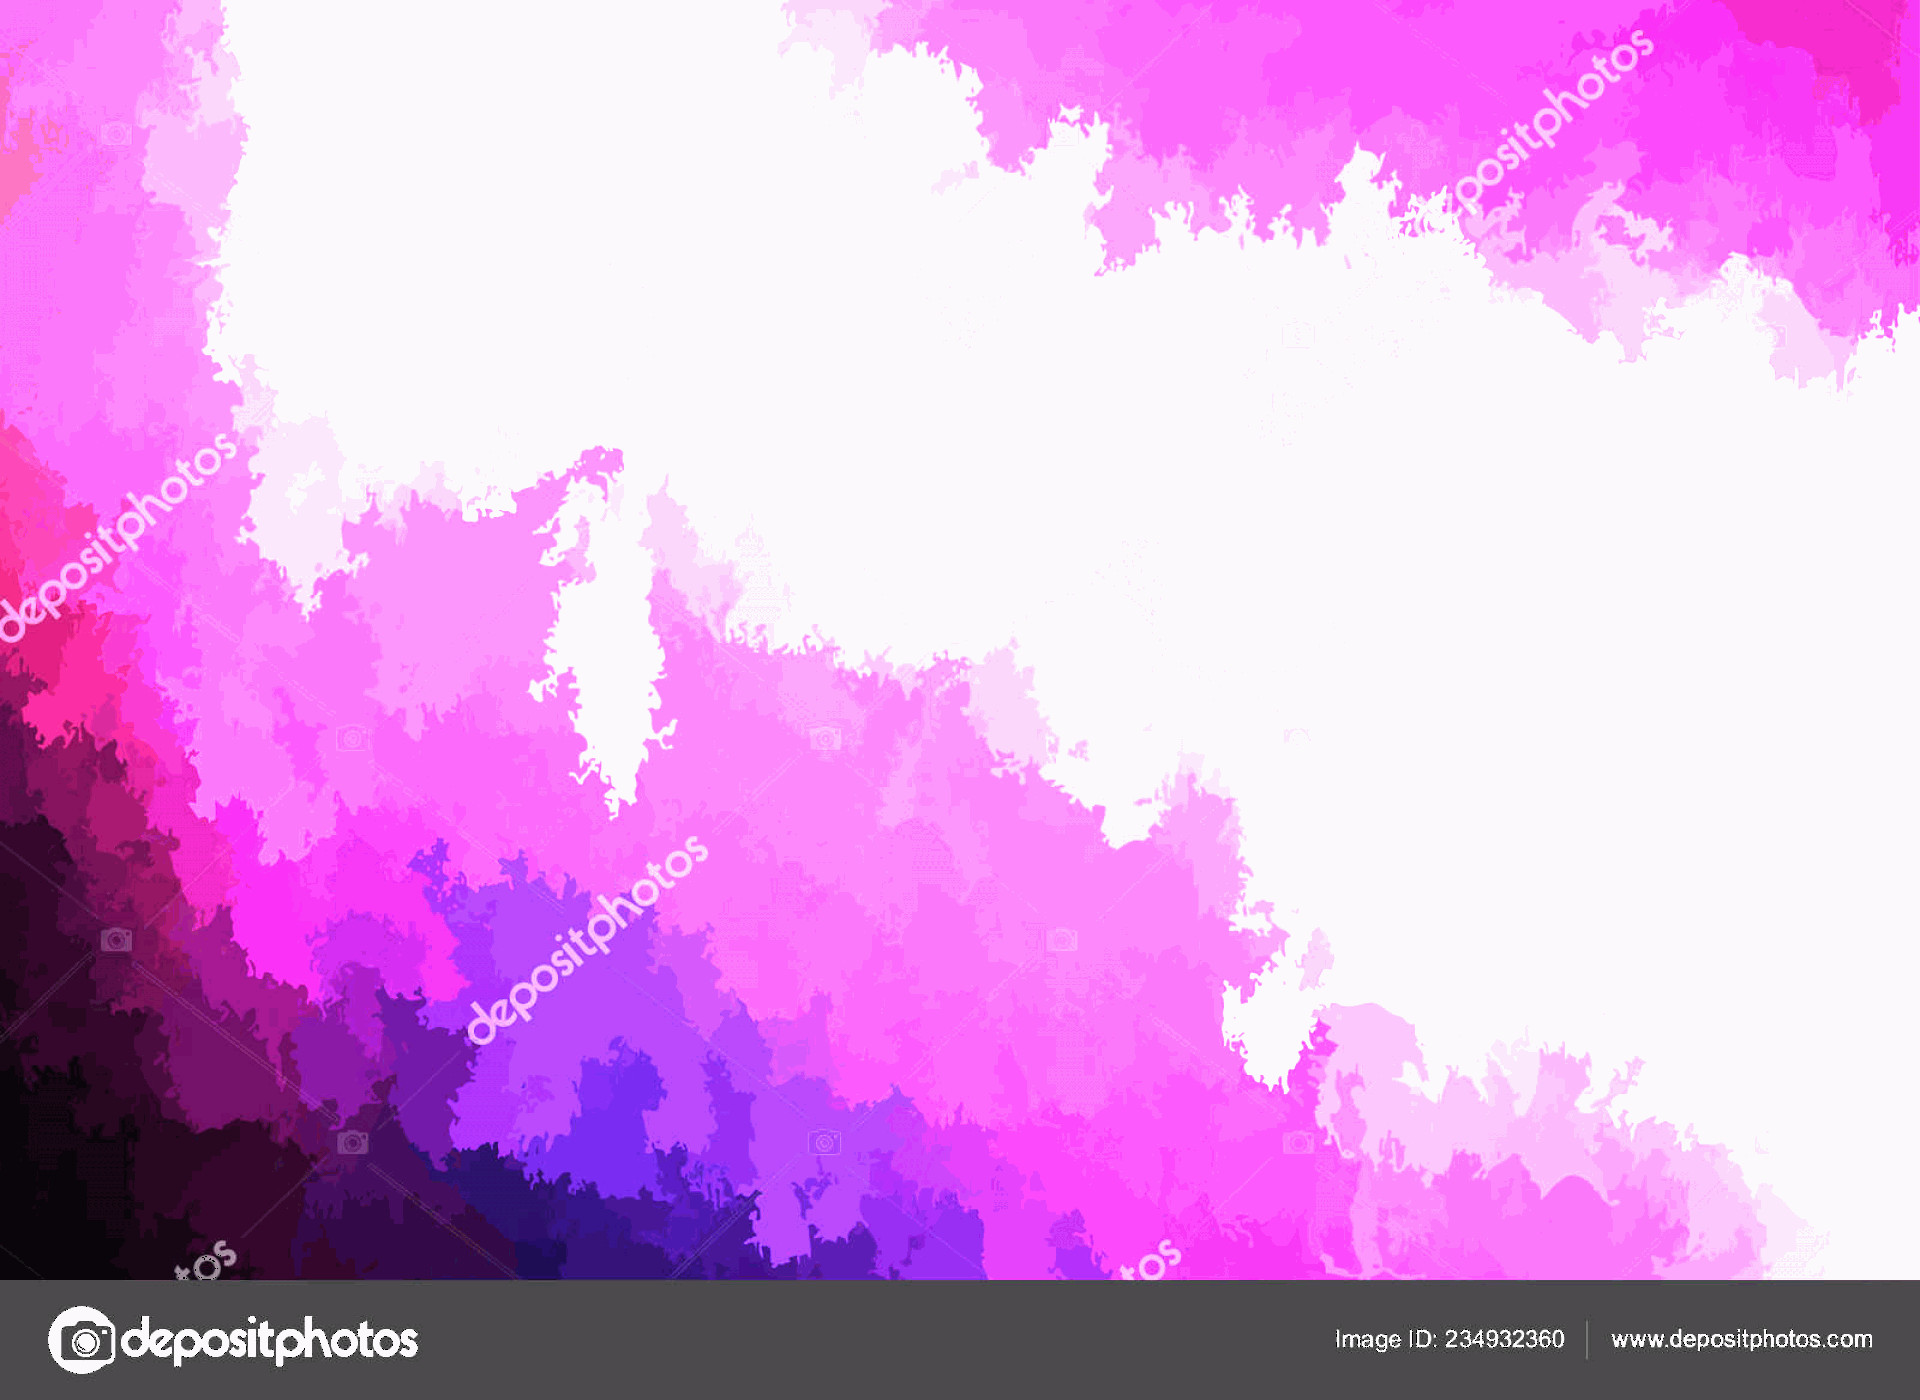 Contemporary Wallpaper Art Vector: Stock Illustration Abstract Modern Vector Background Horizontal